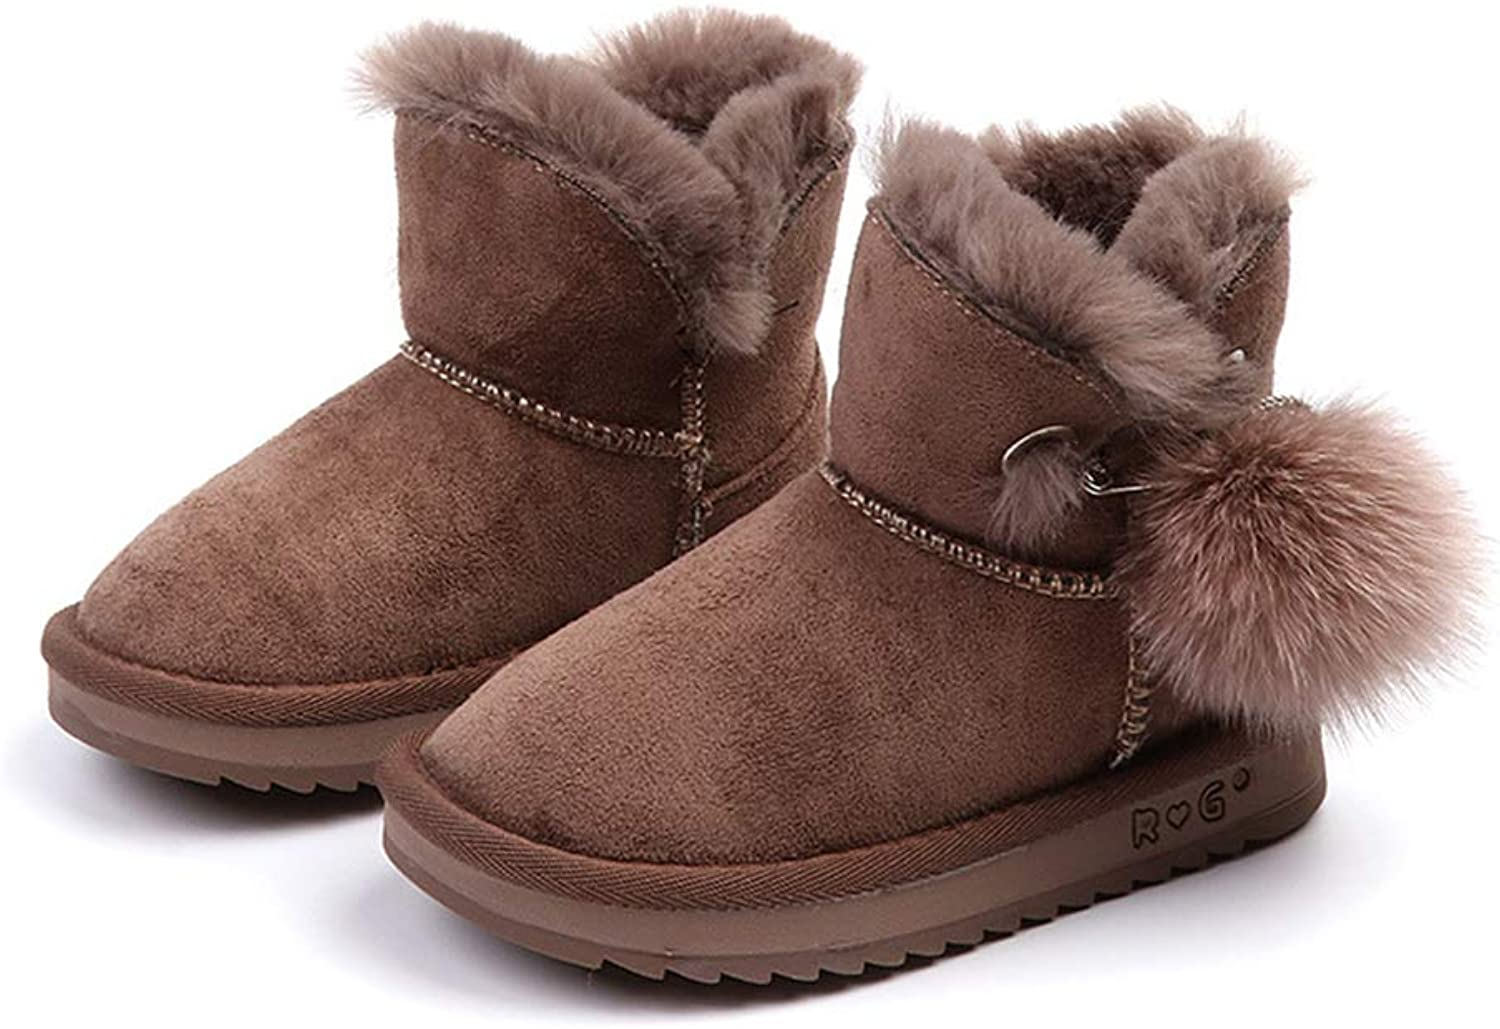 FUN.S Toddler Girls Boots Fur Lined Winter Boots shoes(Toddler Little Kid)